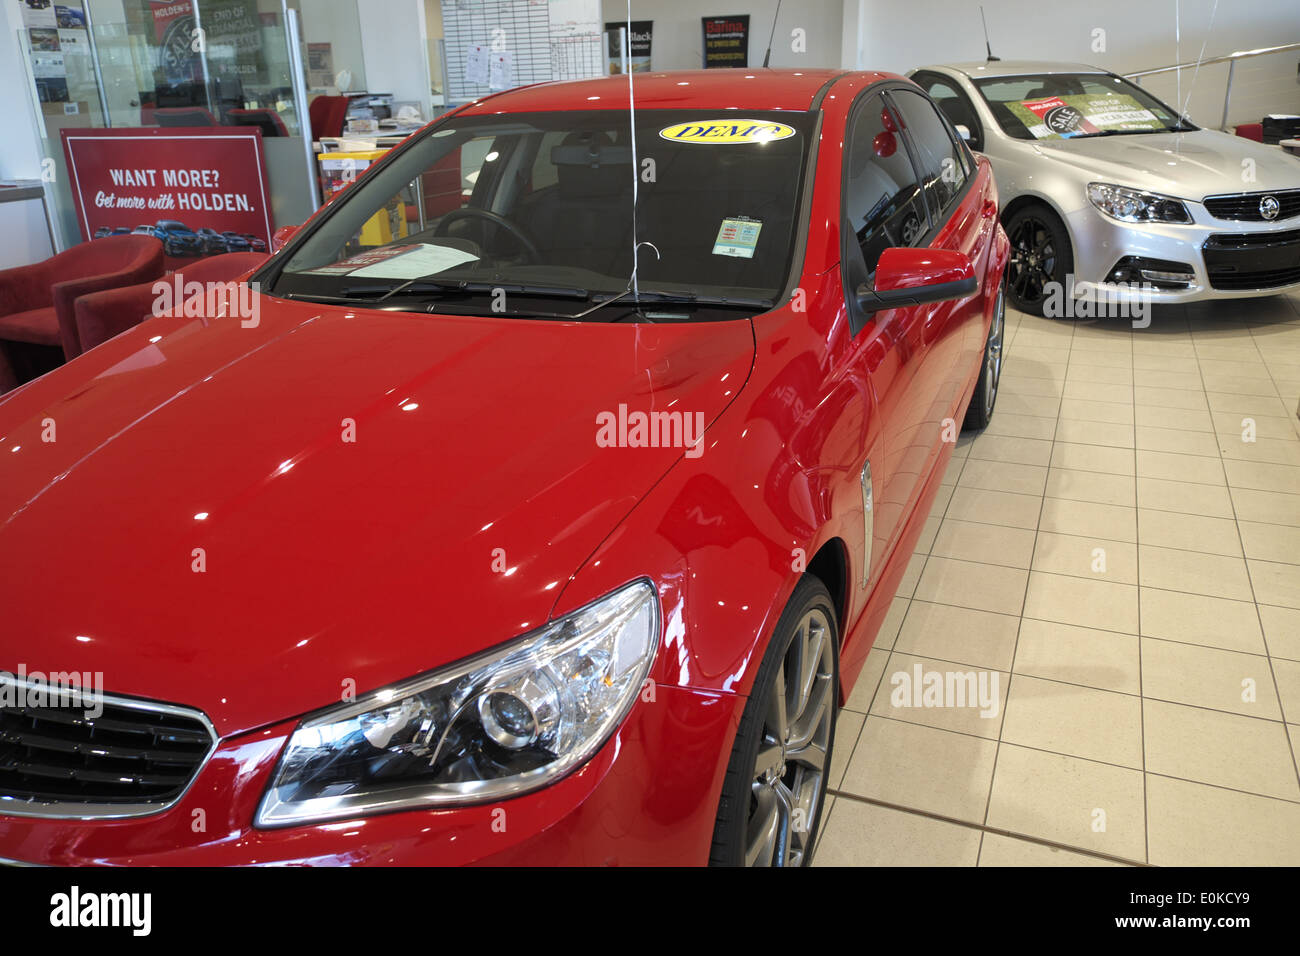 hight resolution of 2014 red holden vf series commodore for sale in a holden dealership in sydney australia